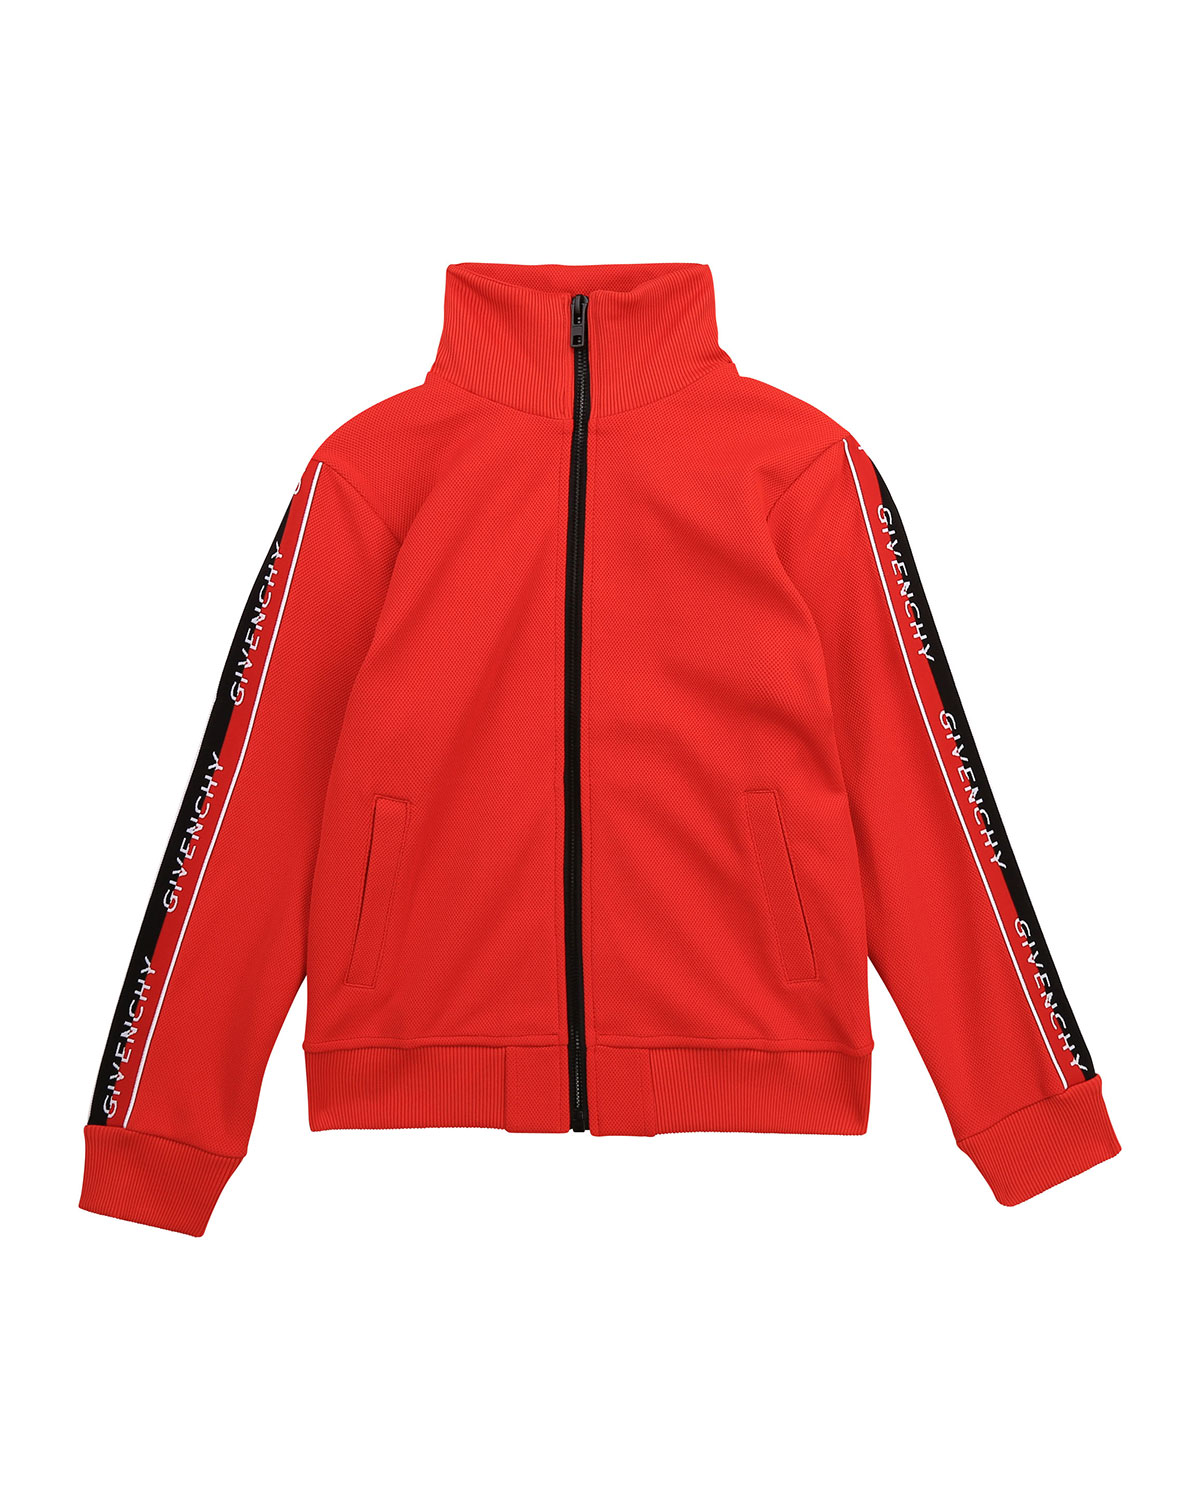 Givenchy BOY'S LOGO-TAPE STAND-COLLAR ZIP-UP JACKET